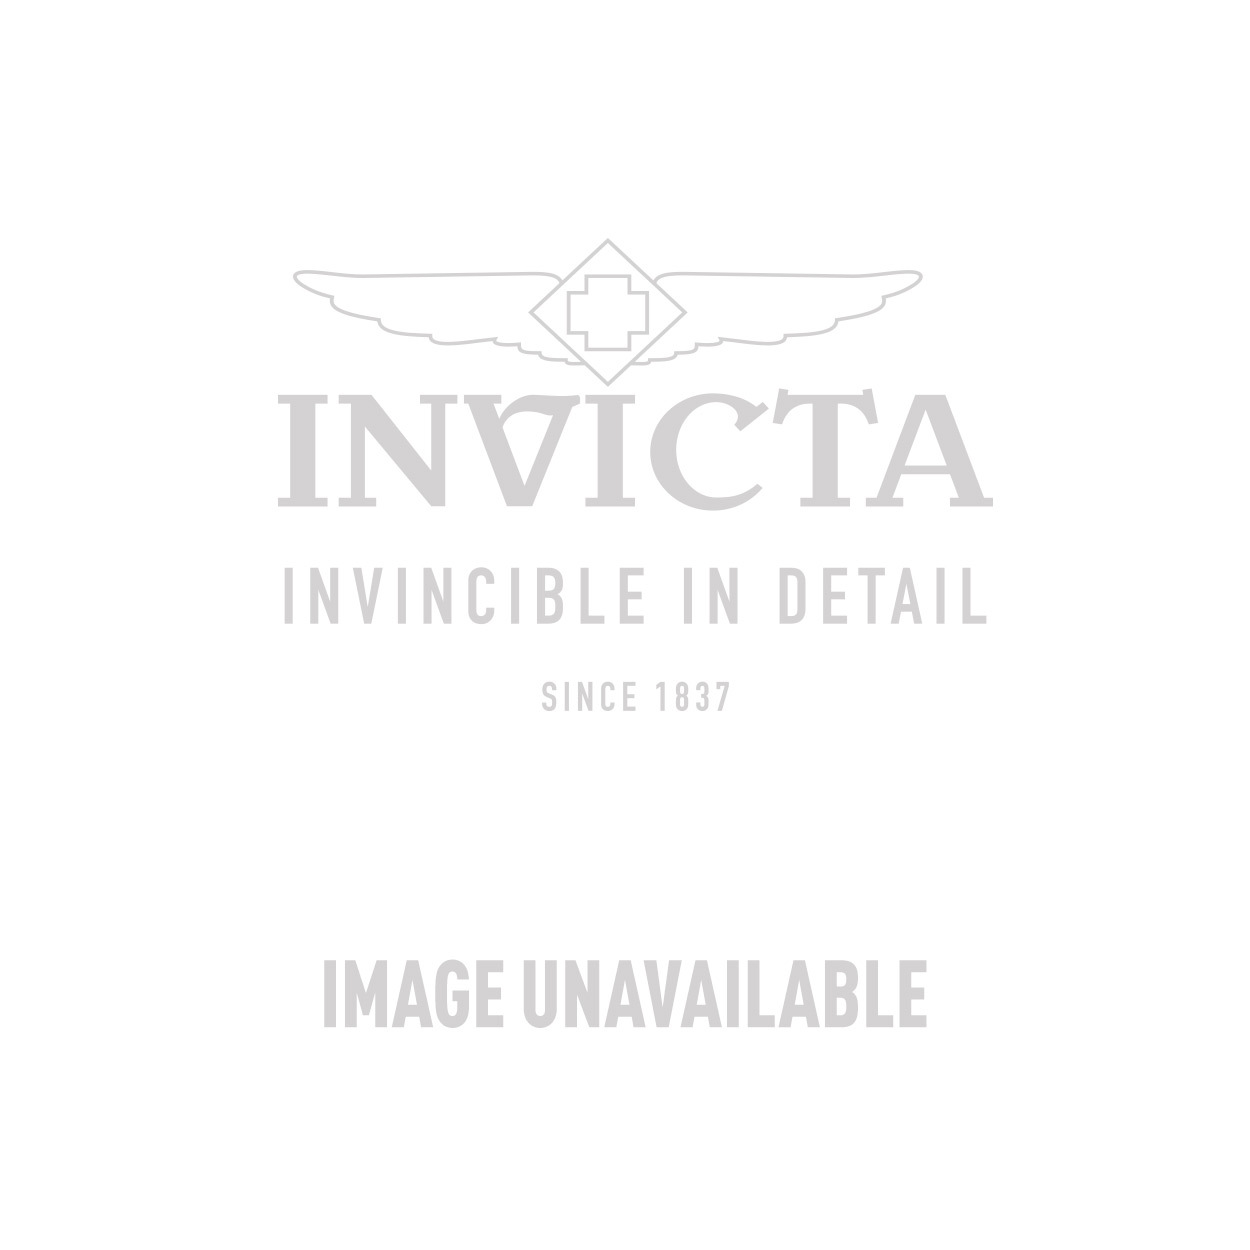 Invicta Speedway Swiss Movement Quartz Watch - Black, Stainless Steel case with Black tone Silicone band - Model 19526